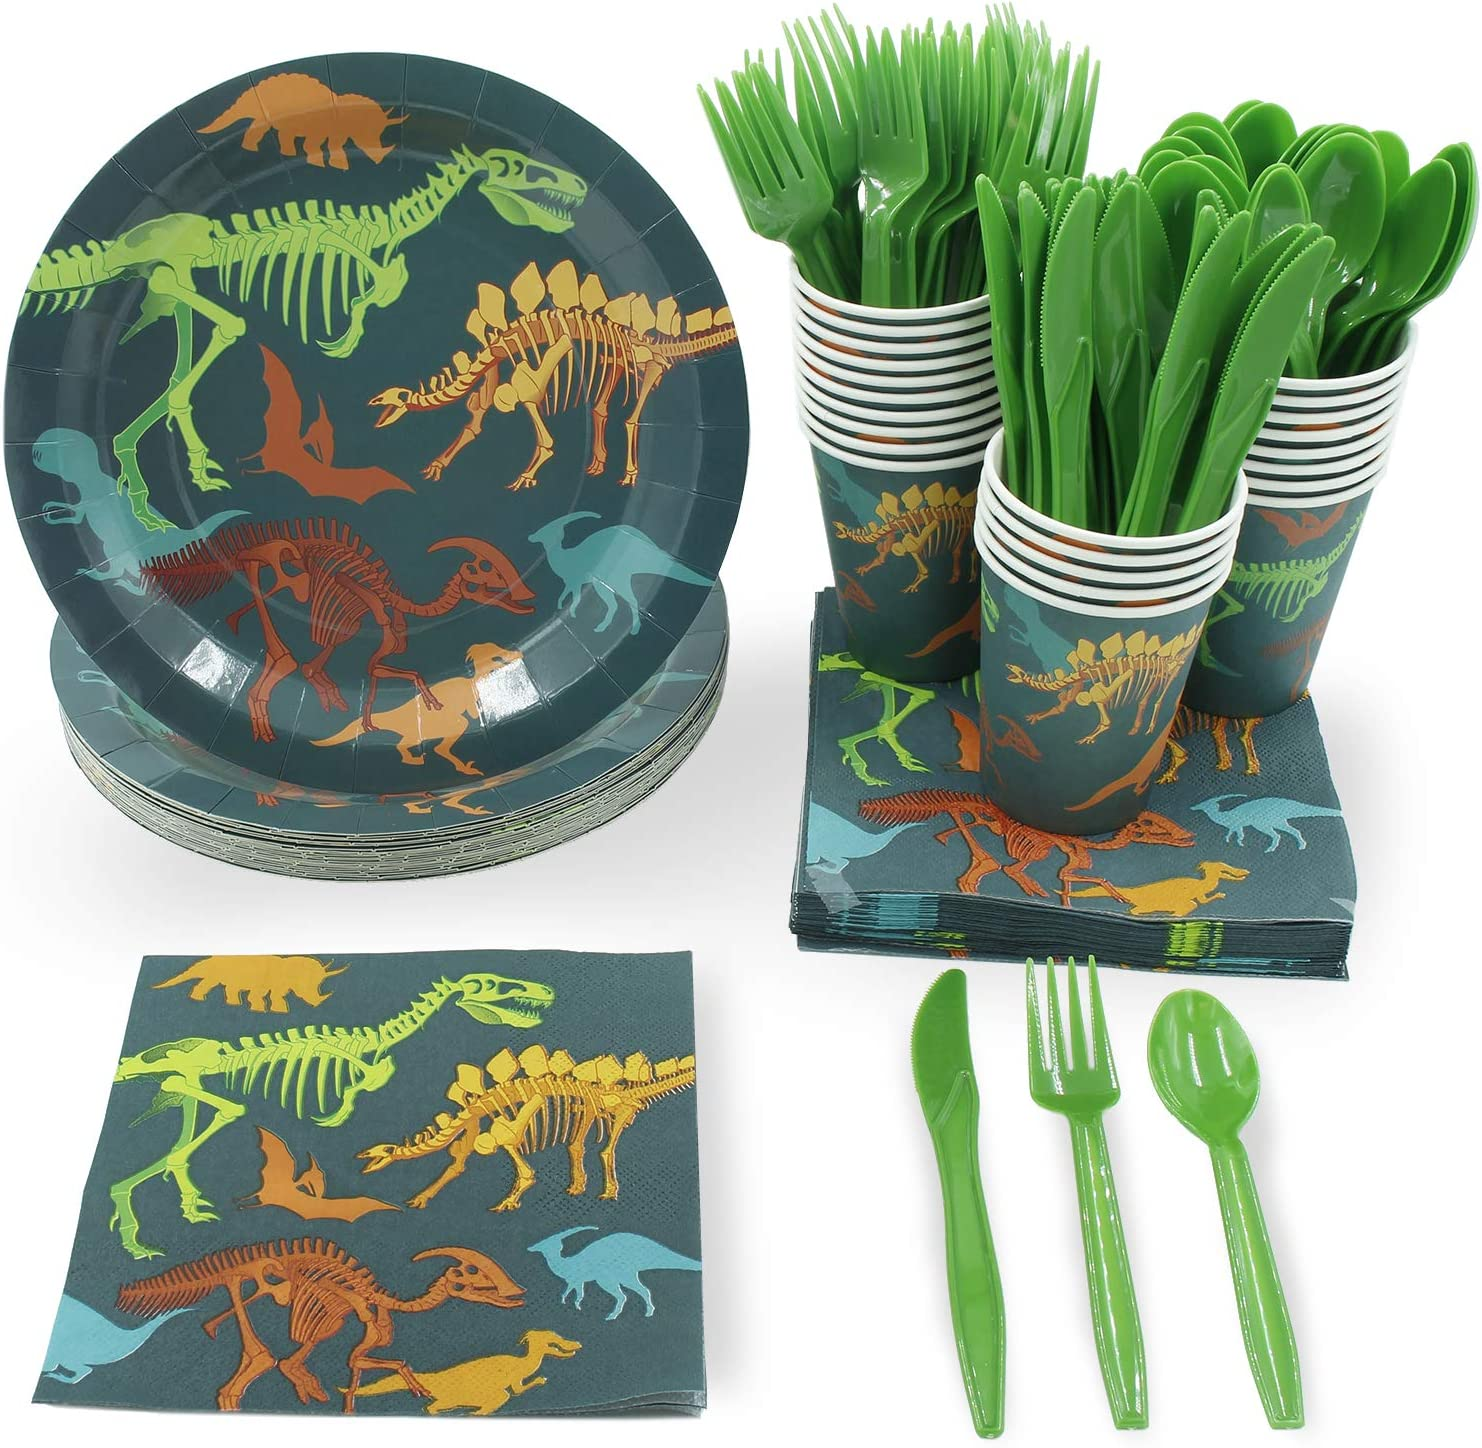 Dinosaur Party Bundle, Includes Plates, Napkins, Cups, and Cutlery (24 Guests,144 Pieces): Toys & Games